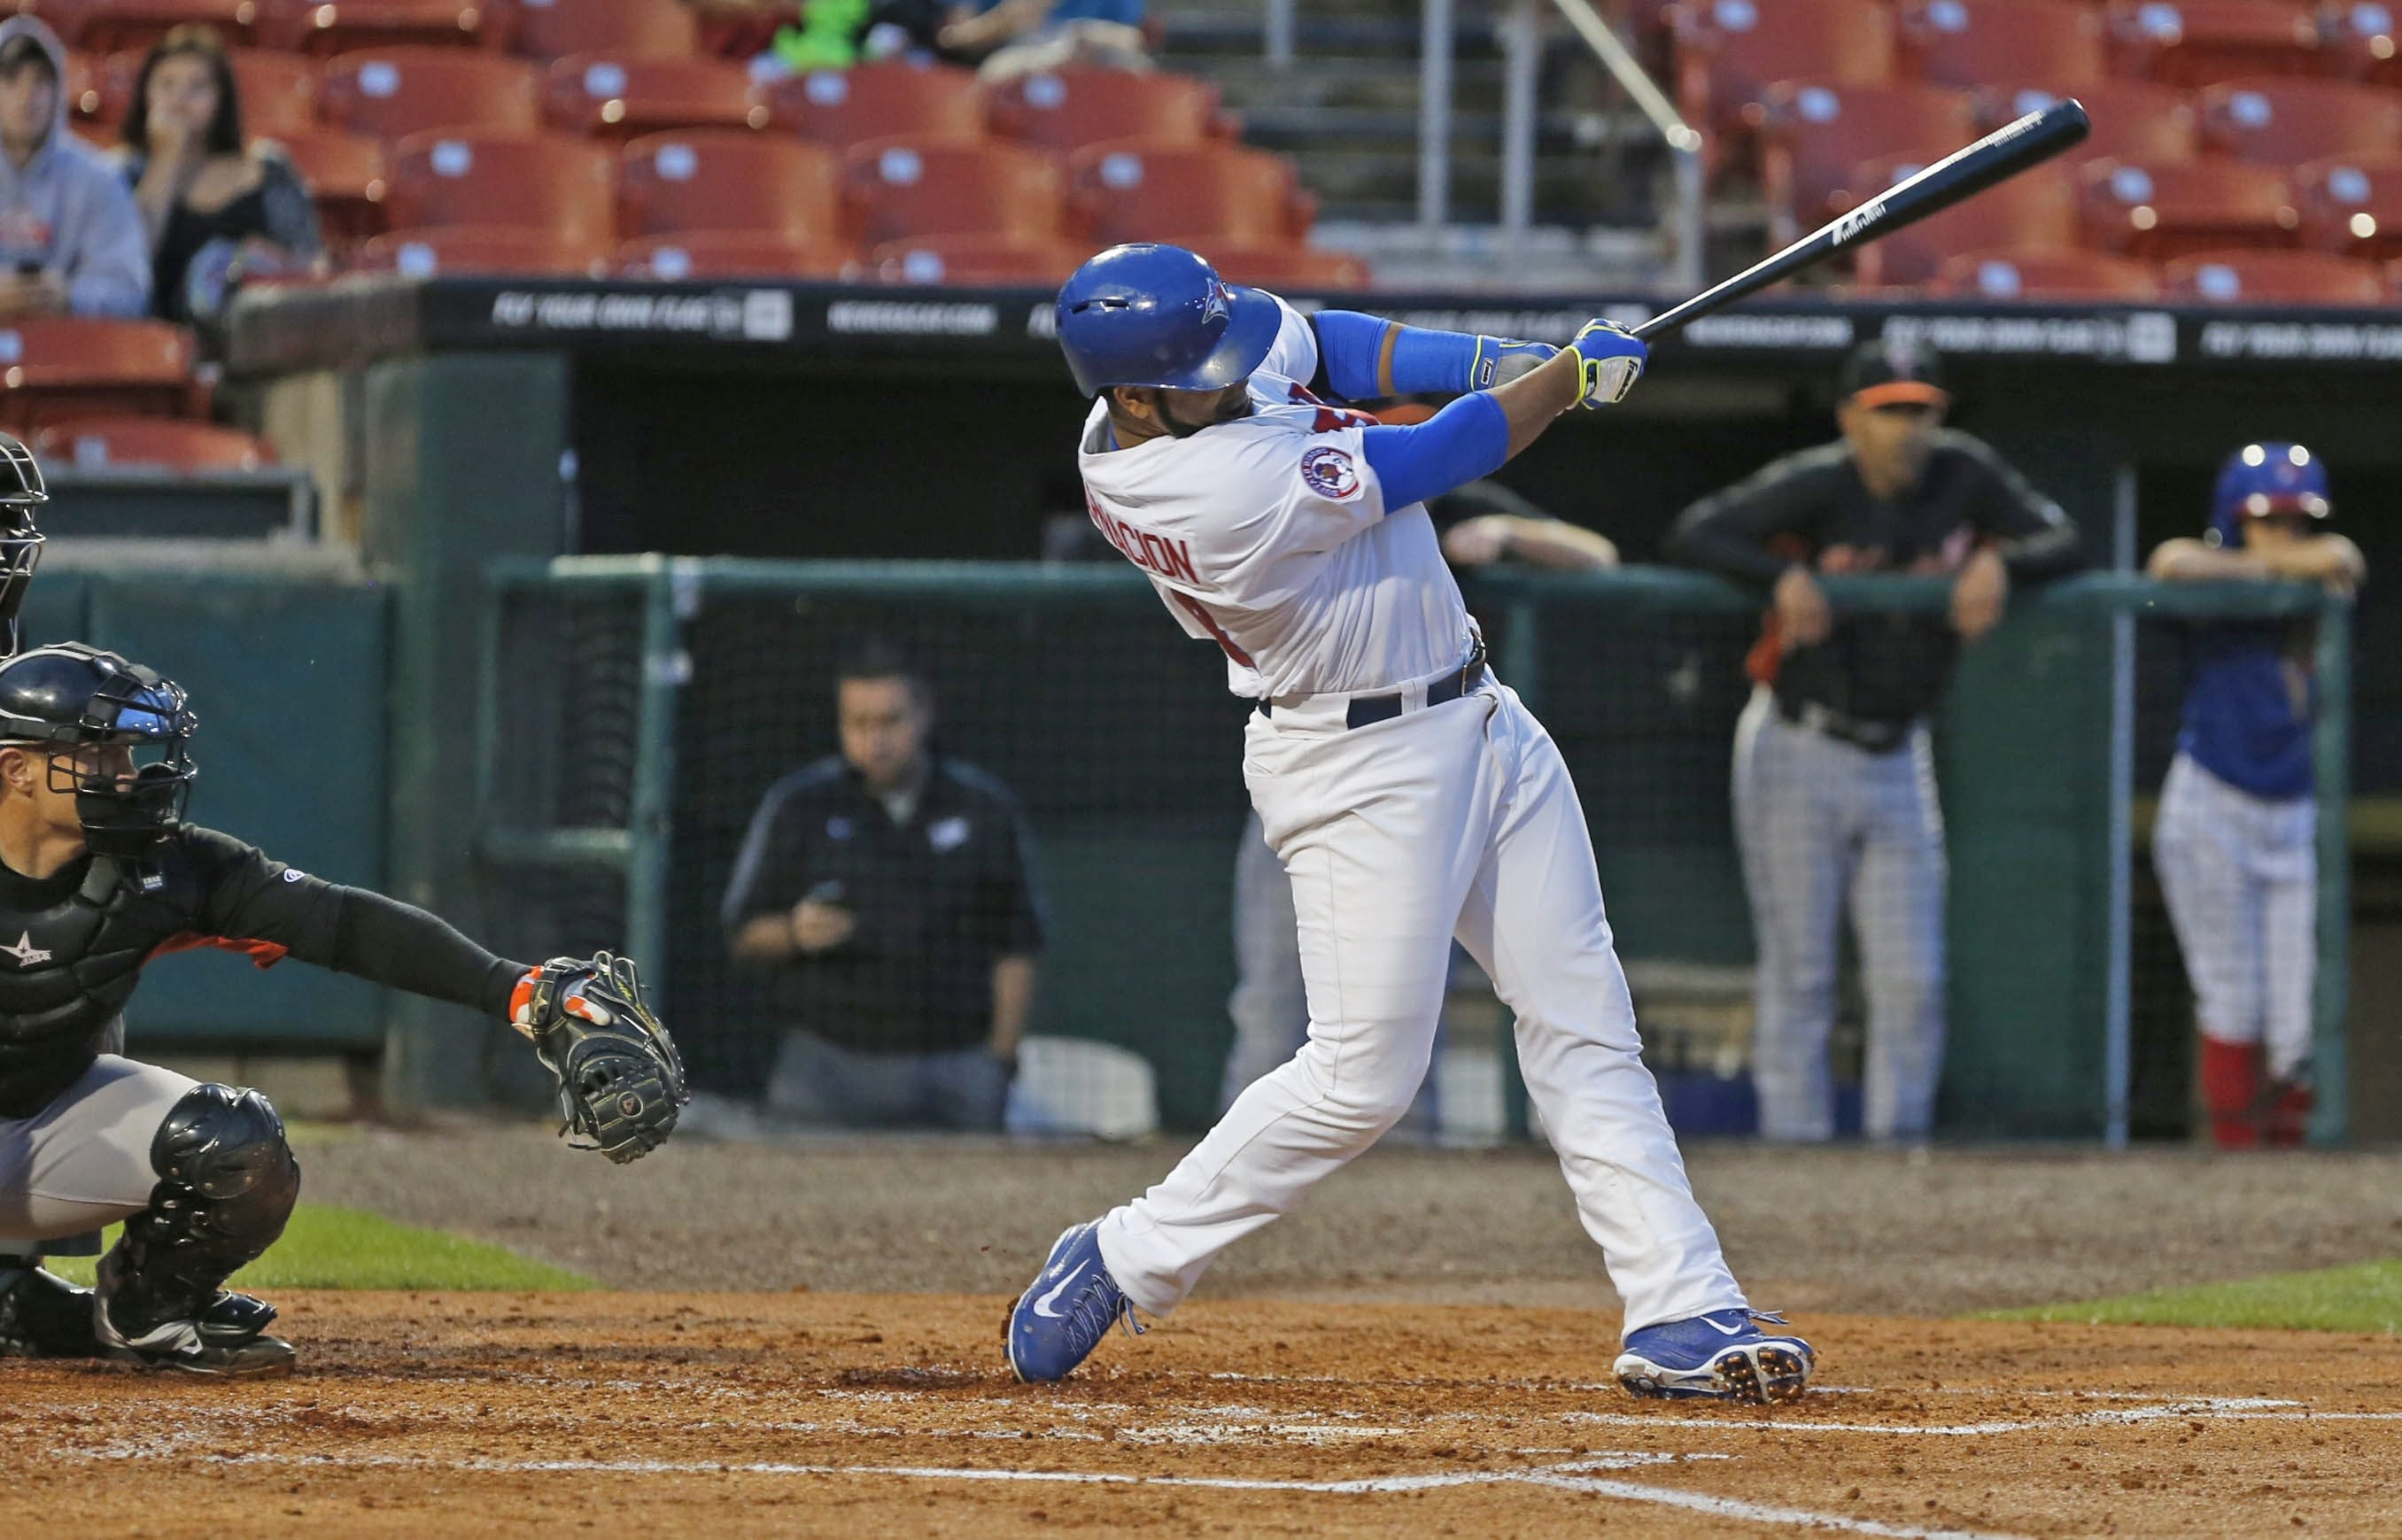 Edwin Encarnacion grand slams in his second time at bat as a Buffalo Bison against Norfolk Tuesday.